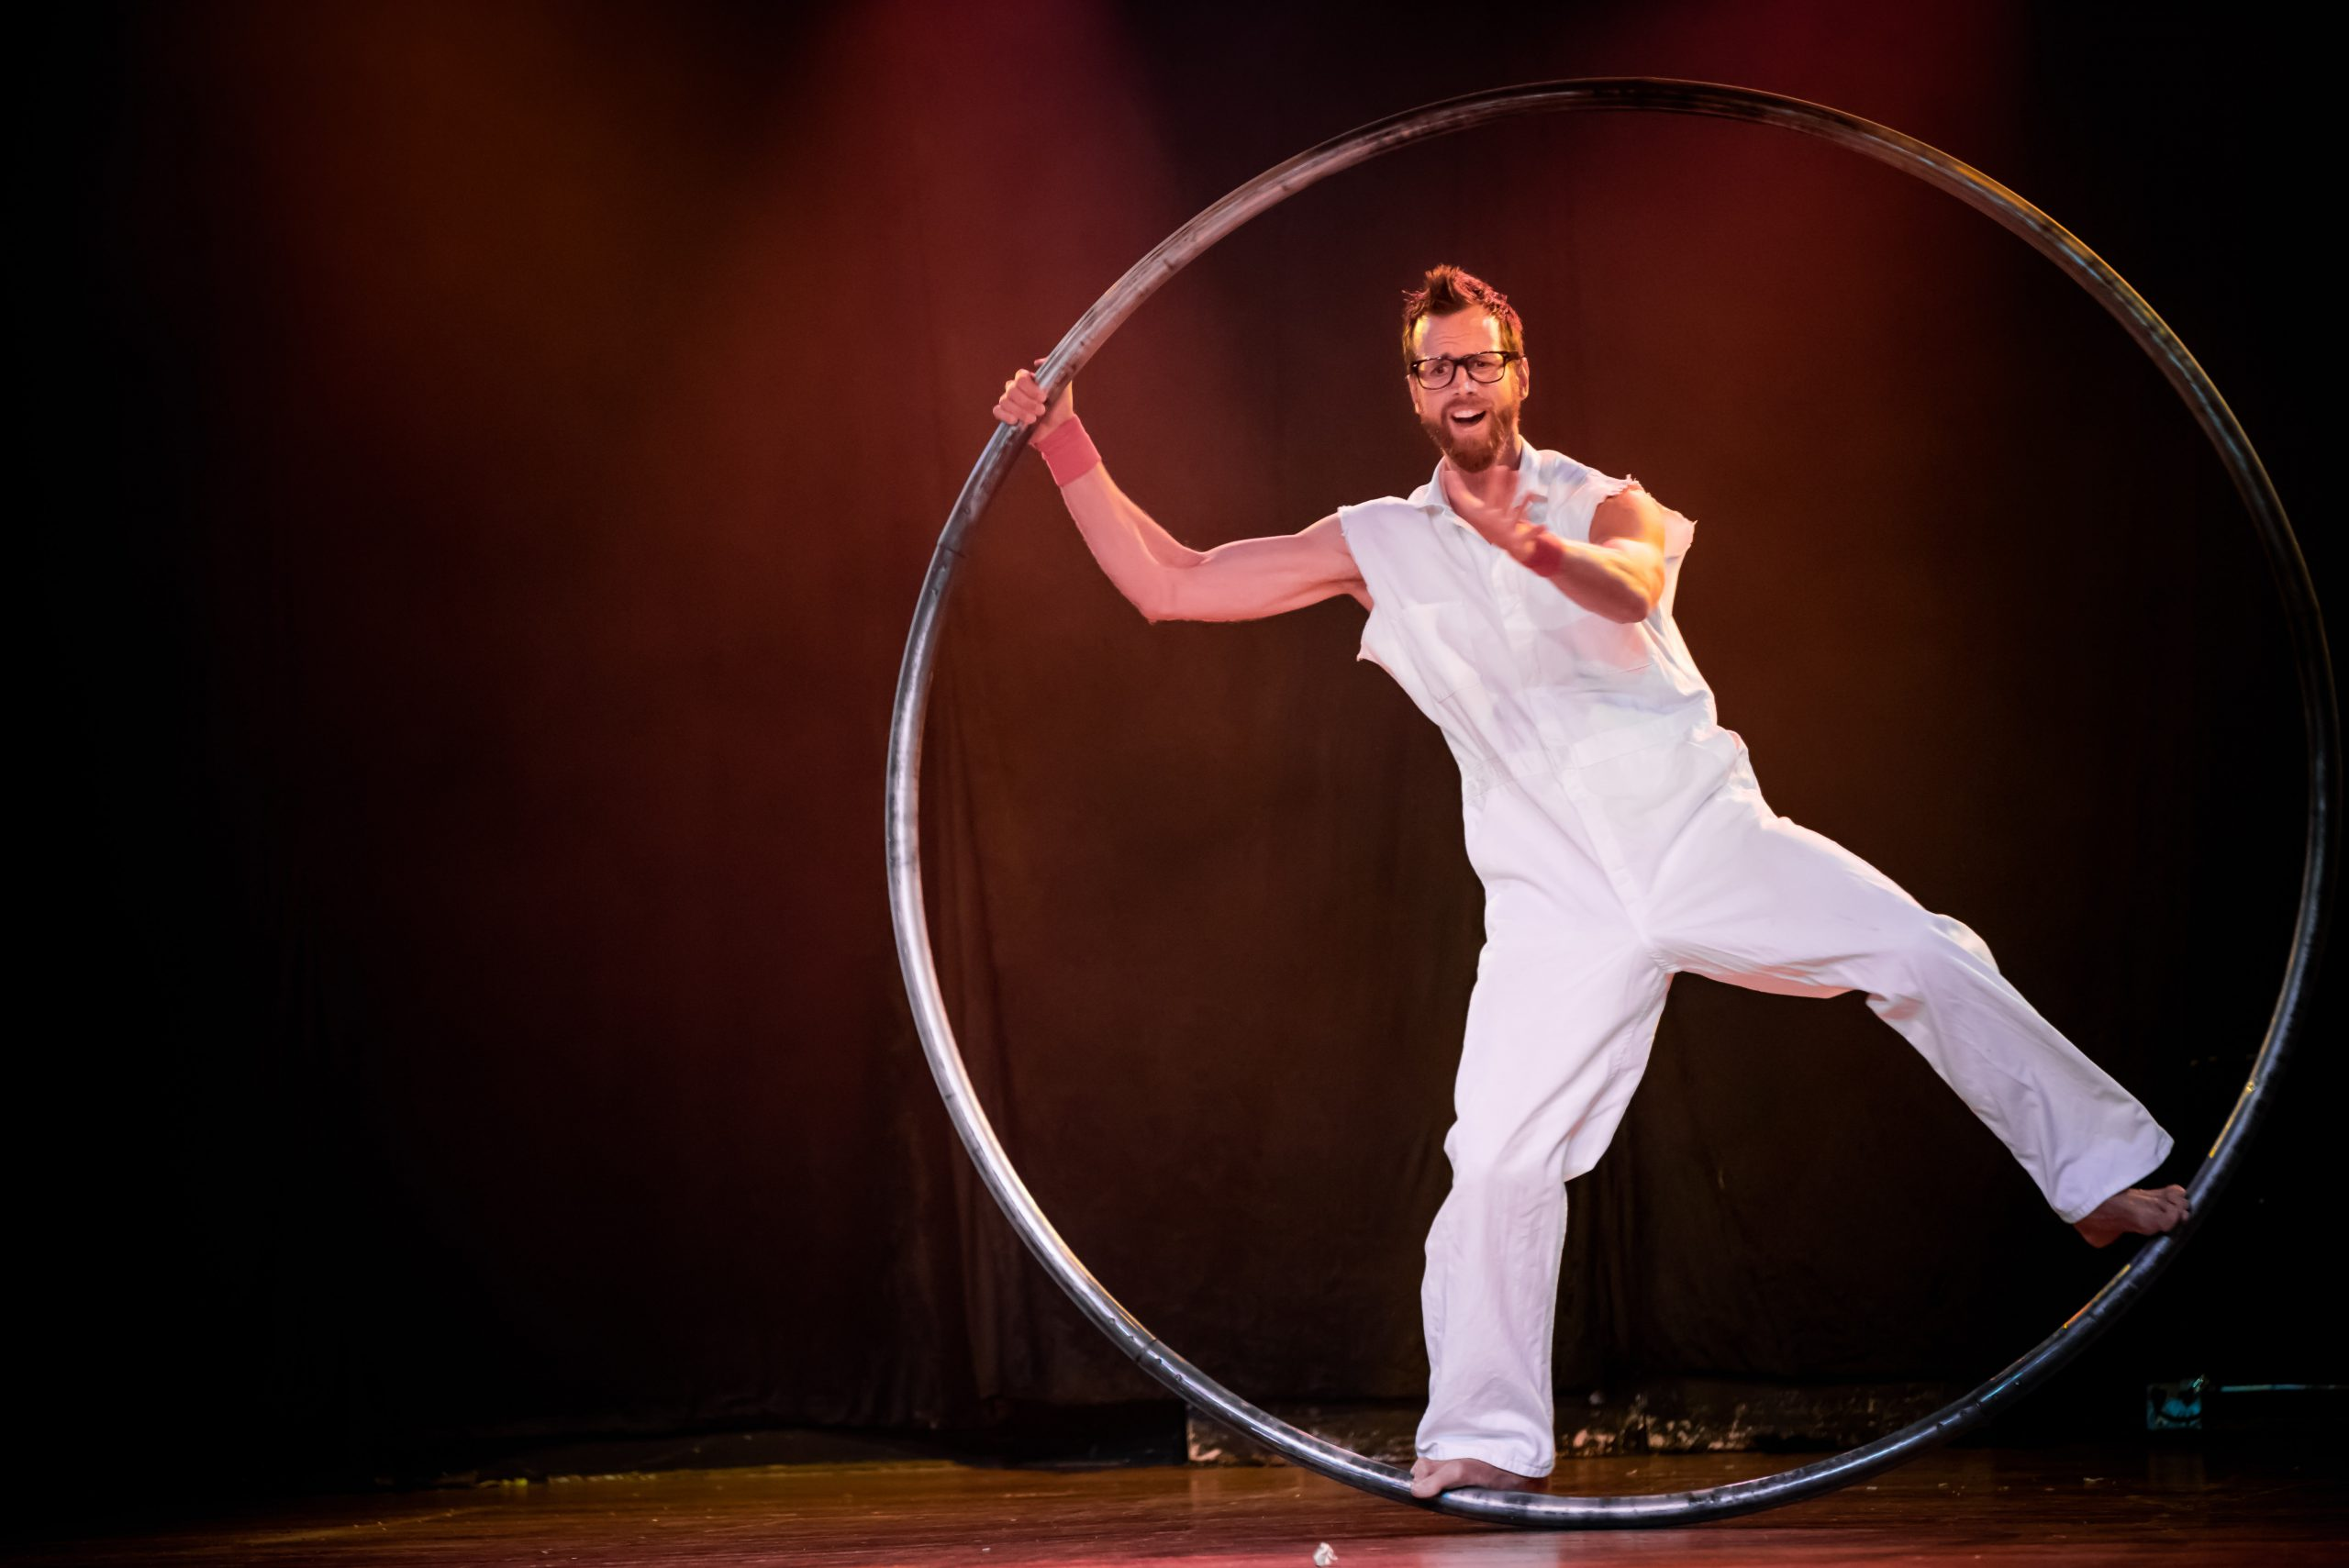 Large hoop performer onstage in Ashland Oregon